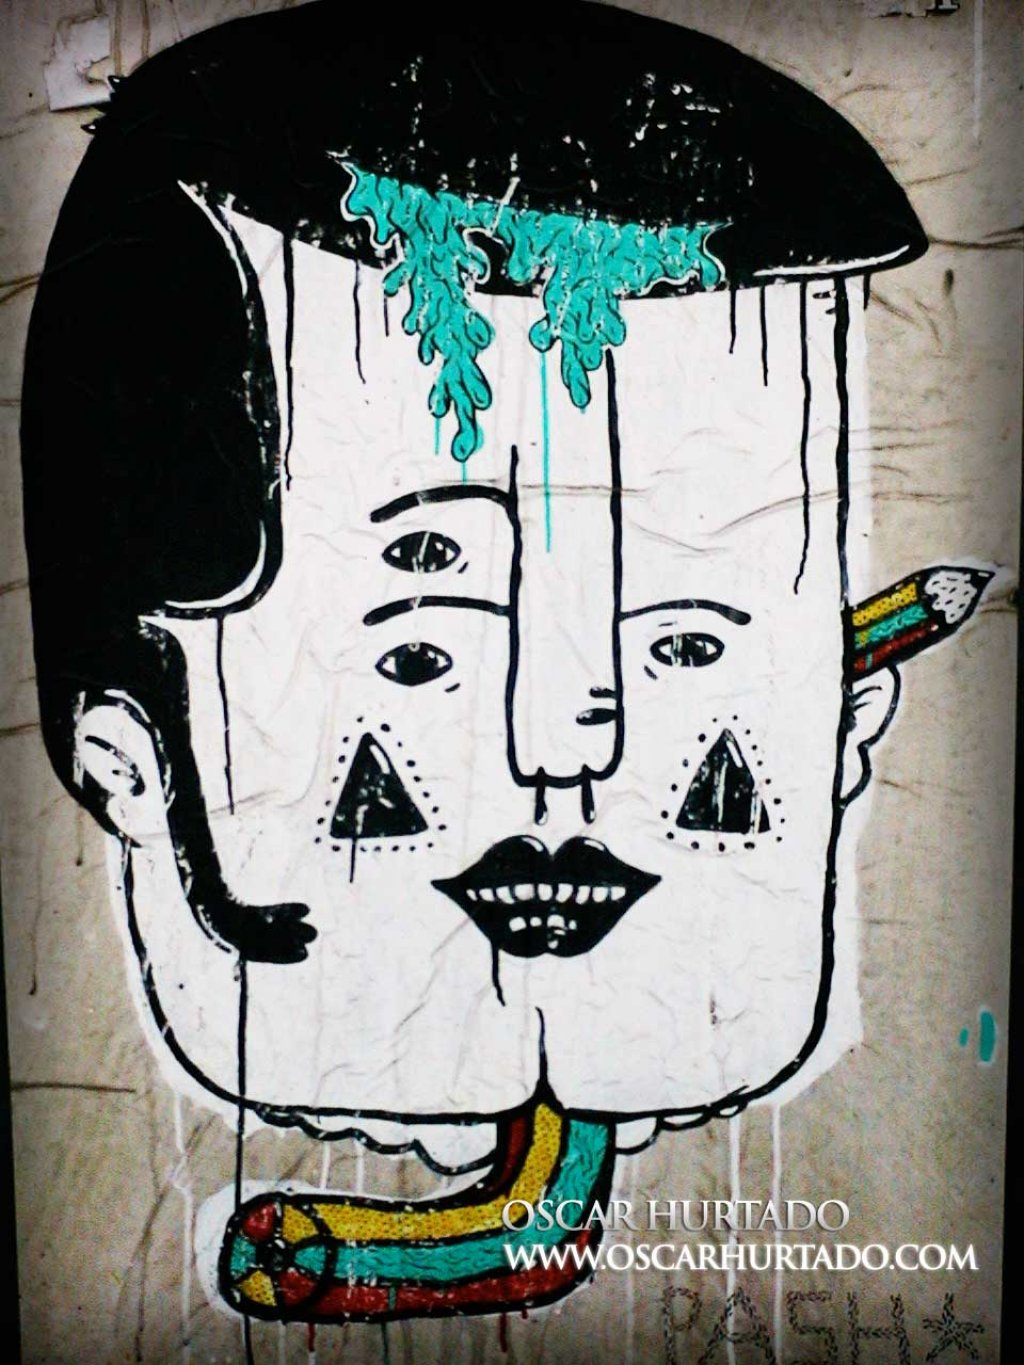 Colorful graffiti sticker portraying the face of a man with different surreal features such as three eyes and a bending tricolor pencil as neck